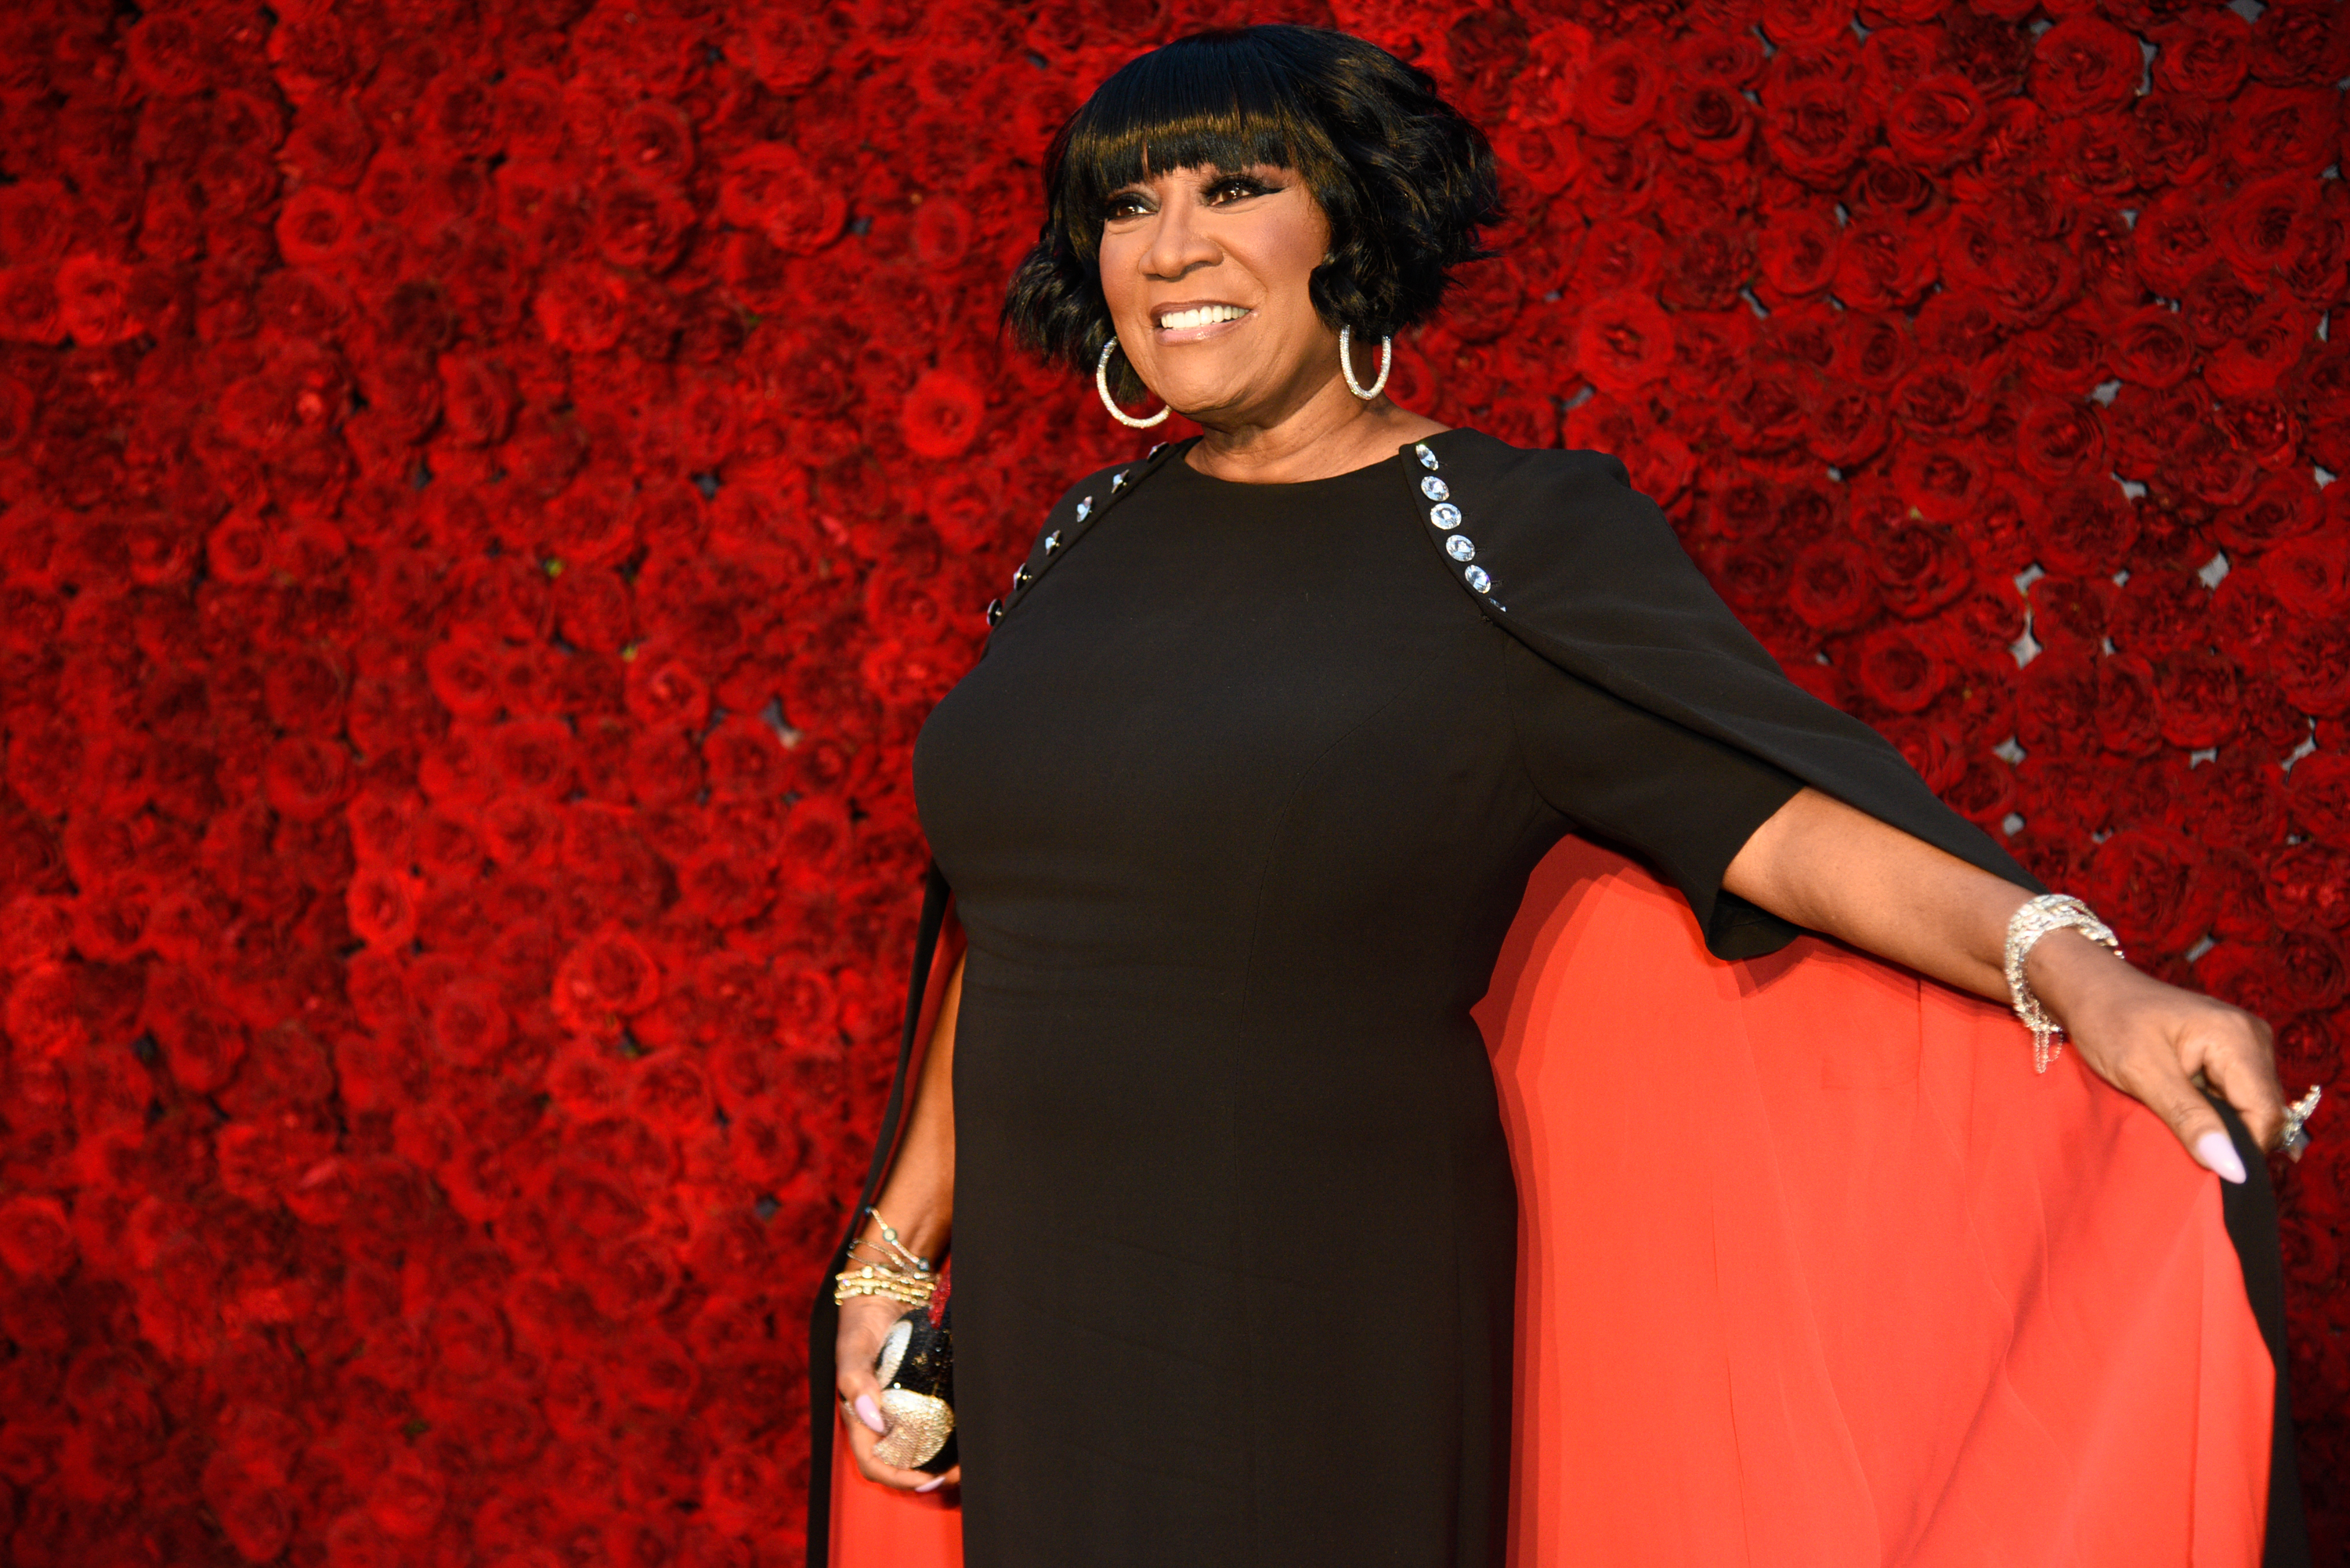 Patti LaBelle attends Tyler Perry Studios grand opening gala earlier this month in Atlanta, Georgia.